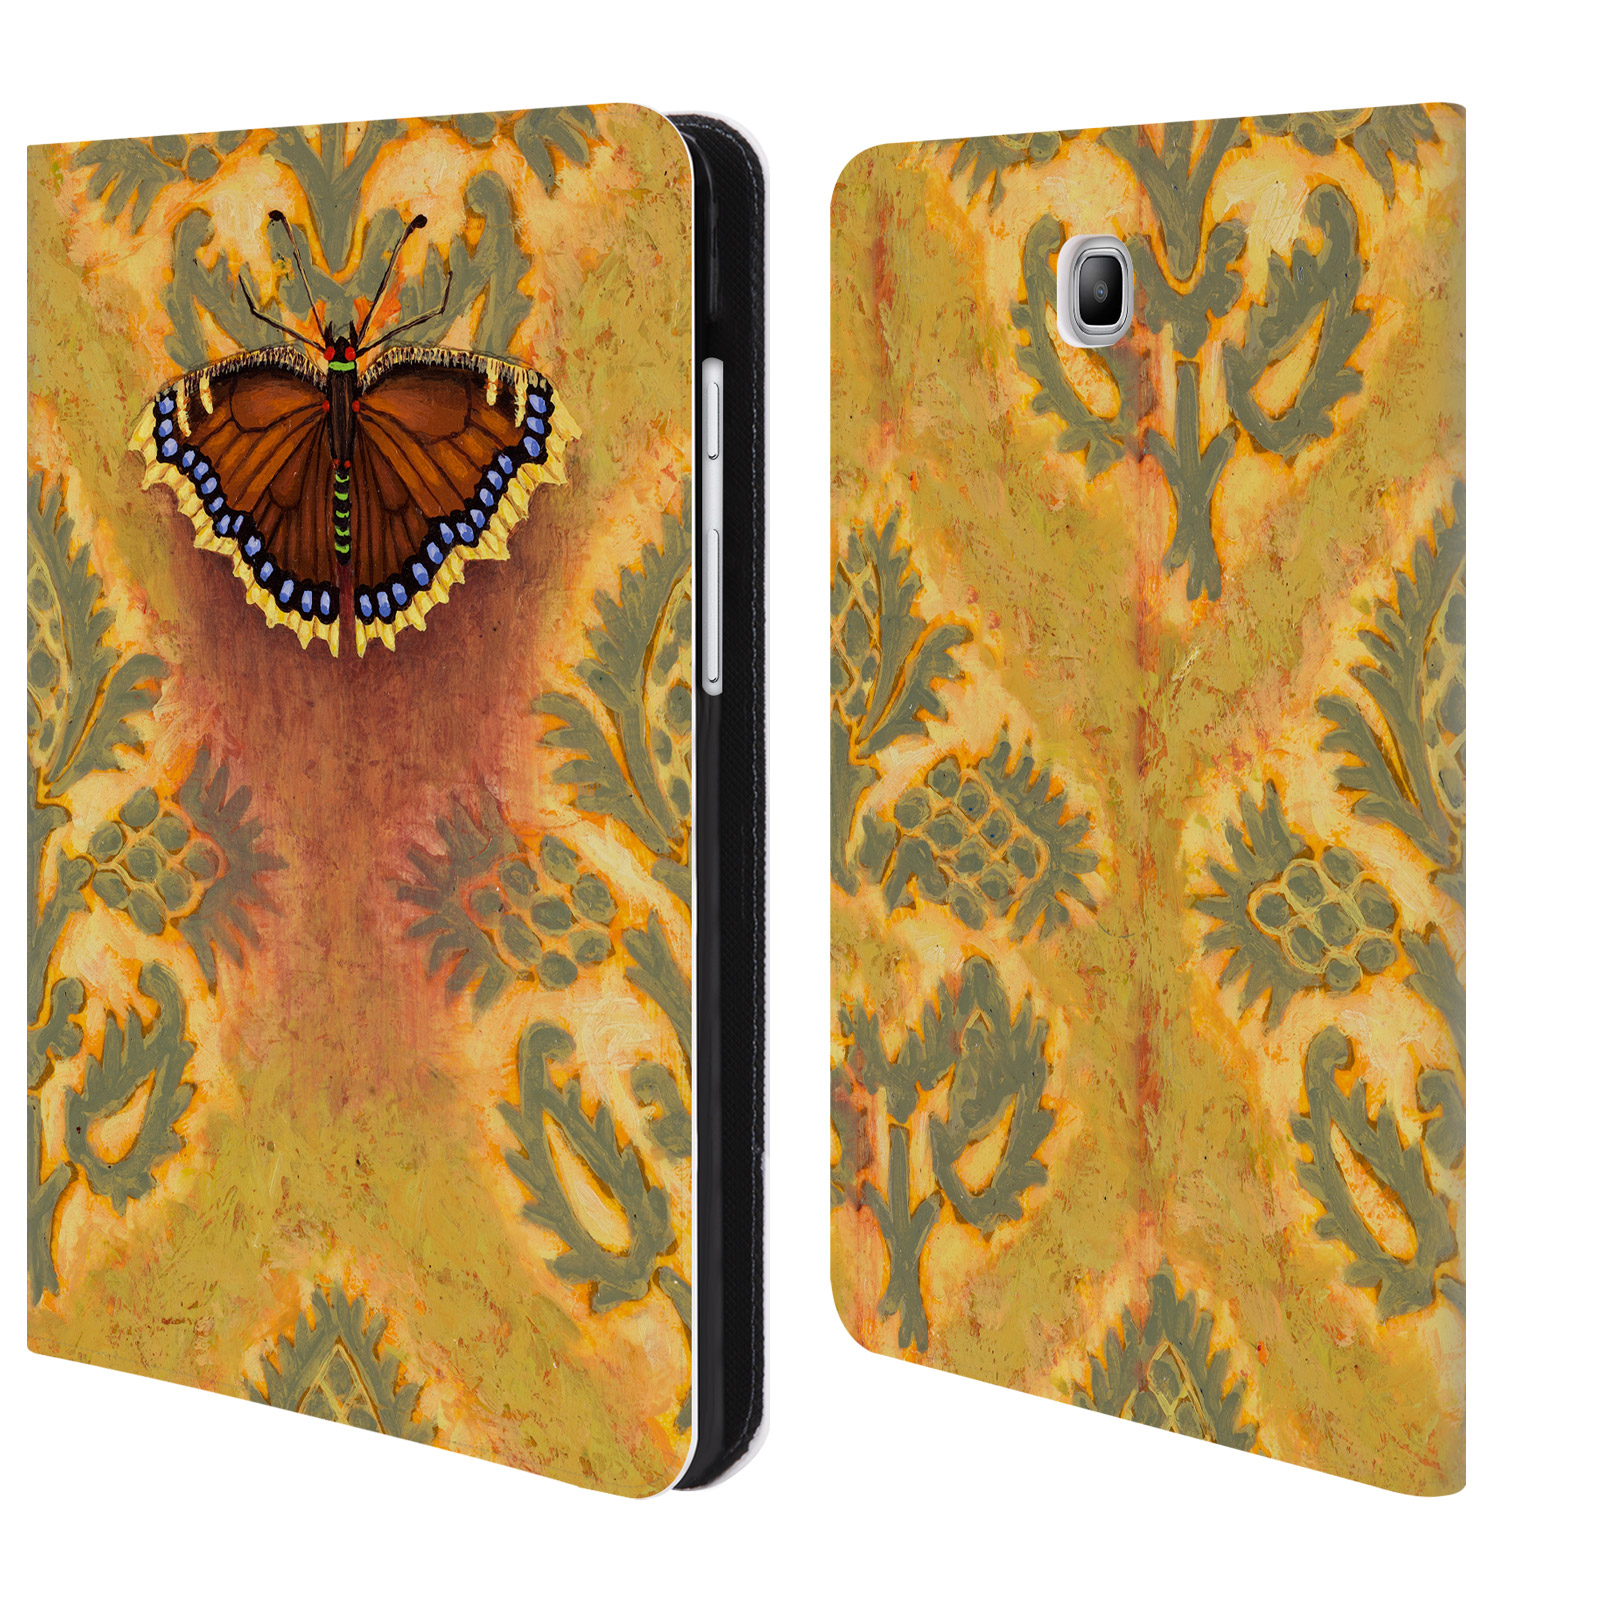 OFFICIAL-RACHEL-PAXTON-INSECTS-LEATHER-BOOK-CASE-FOR-SAMSUNG-GALAXY-TABLETS